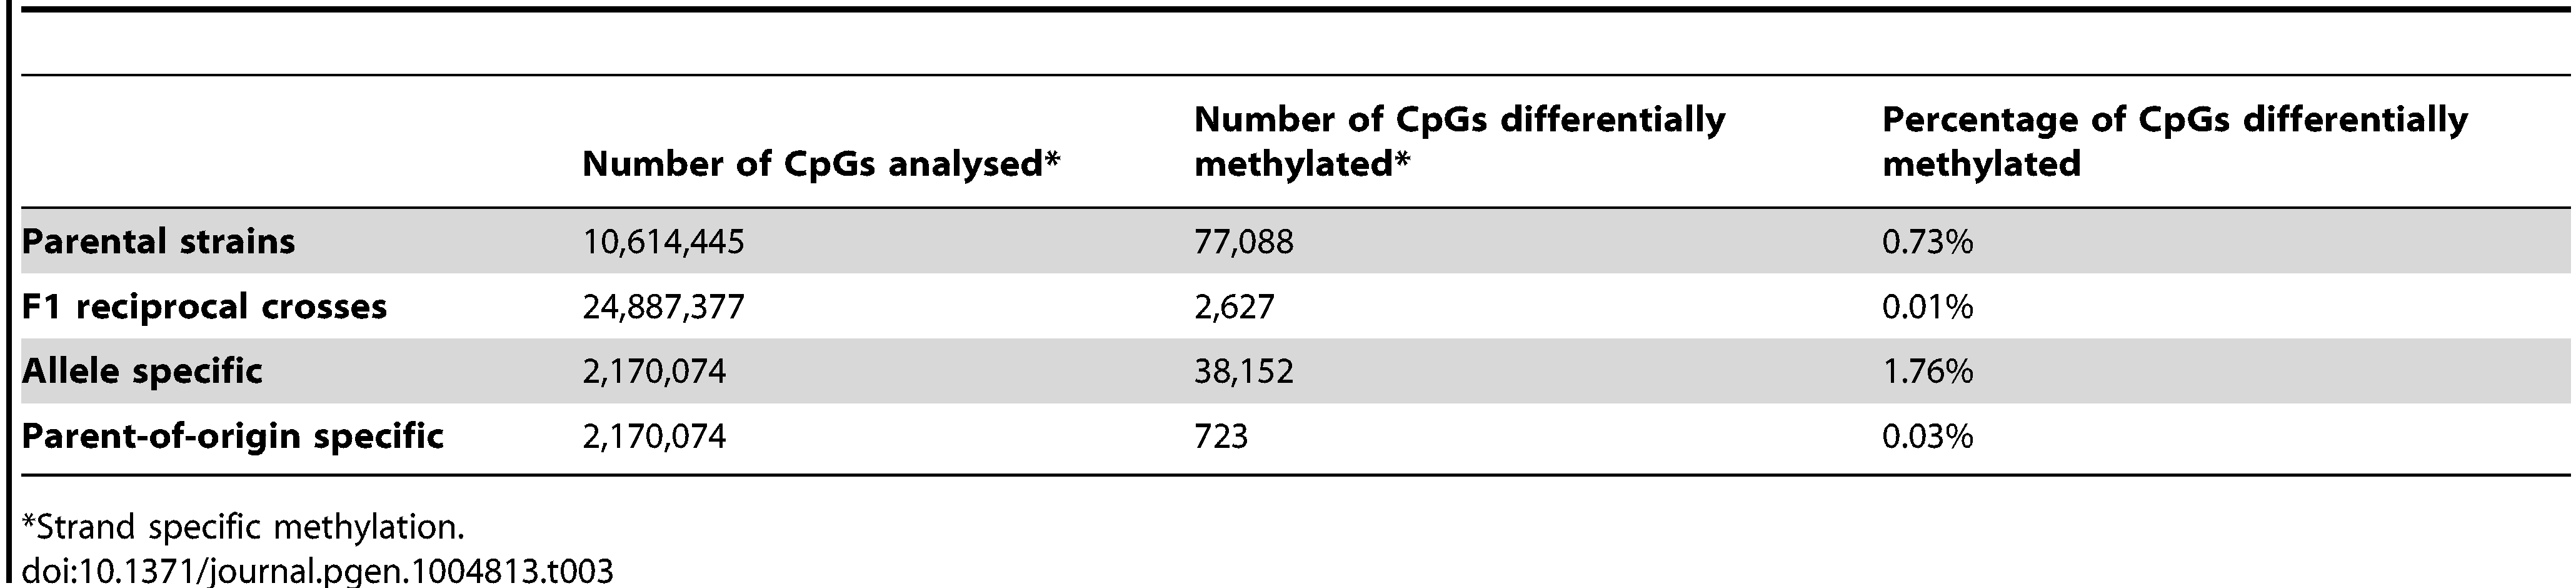 Summary of differential methylation by source of variation.